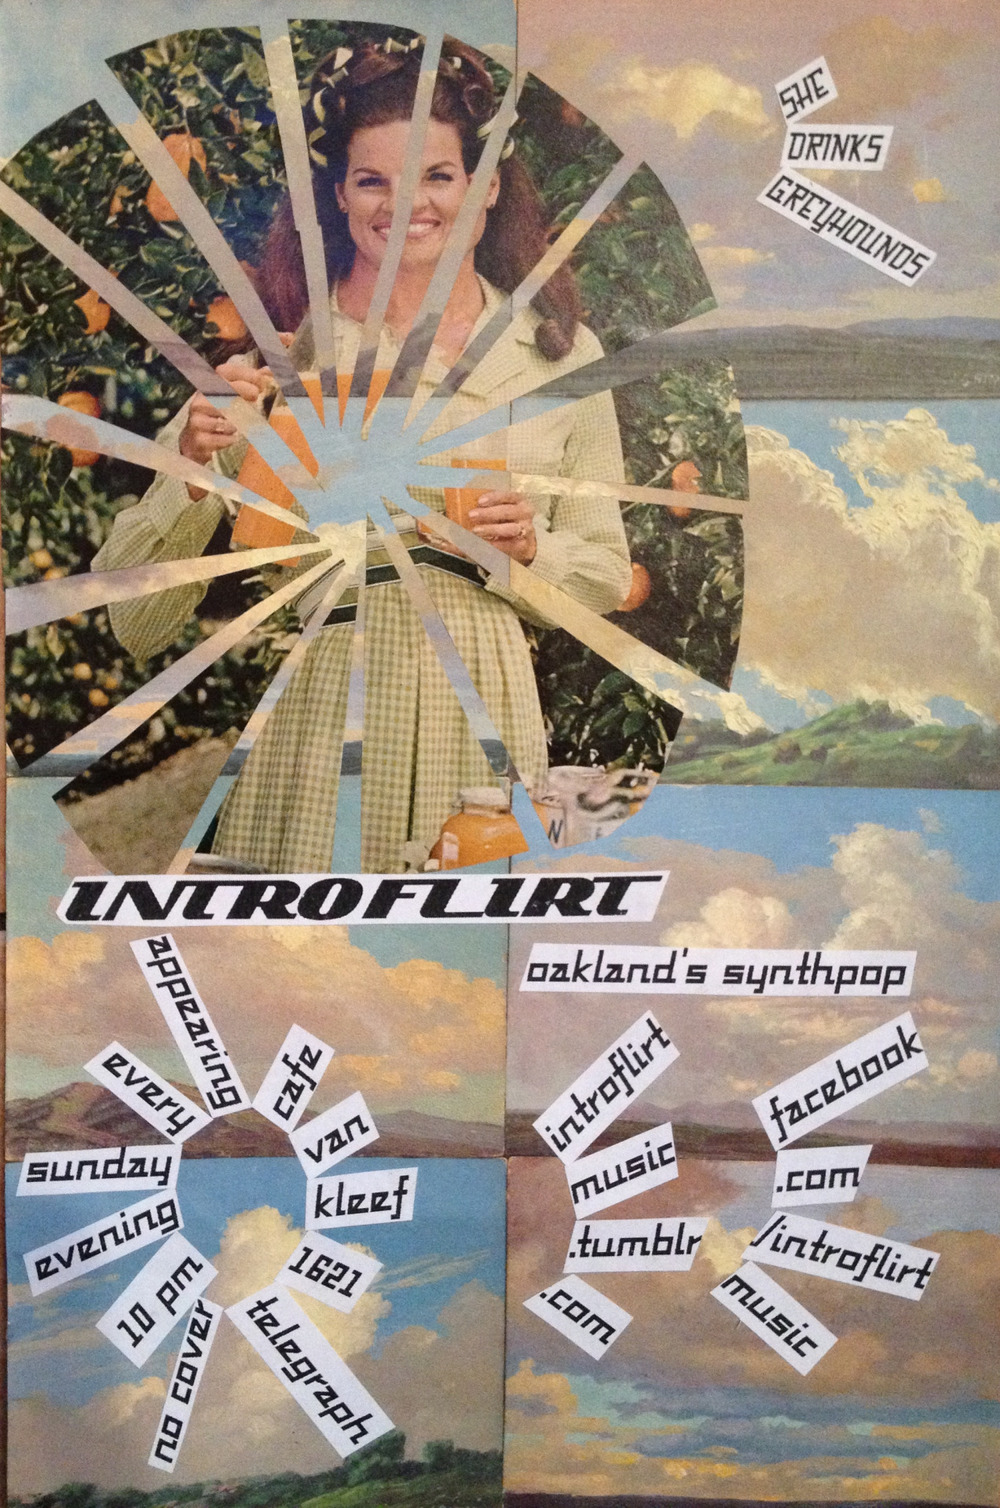 Oakland's Sunday Synthpop Serenade with Introflirt. Cafe Van Kleef. Every Sunday Night at 10pm. FREE. 1621 Telegraph Avenue.